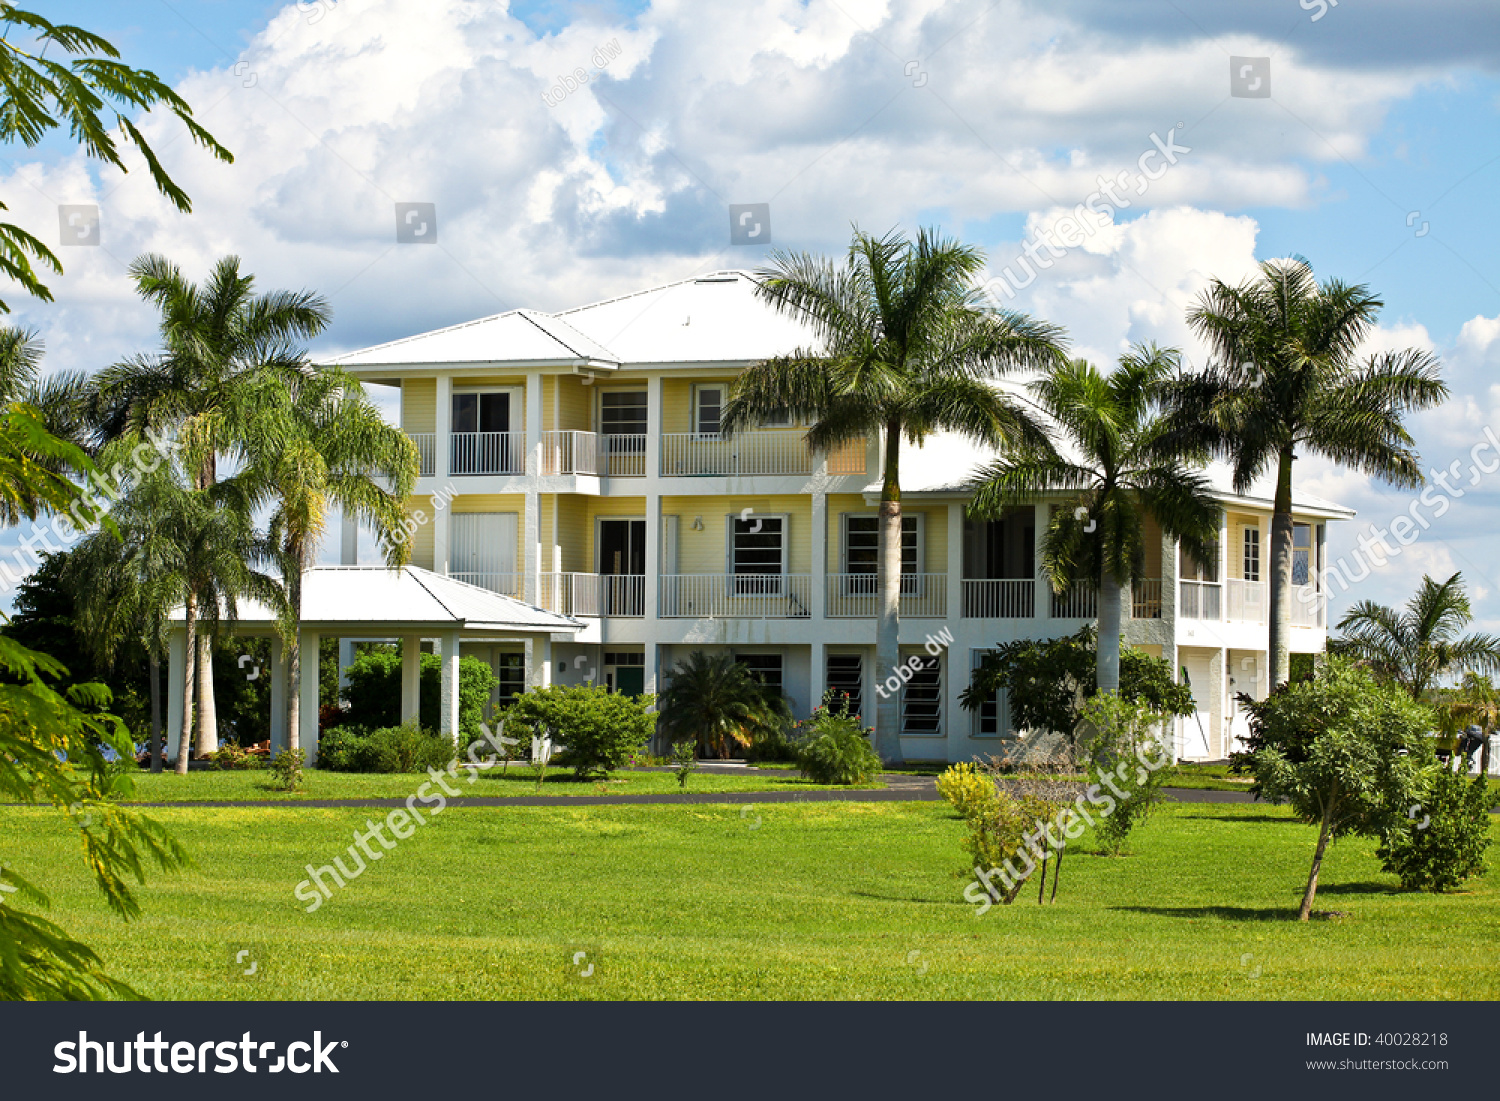 Large tropical beach house in florida stock photo 40028218 for Large beach house